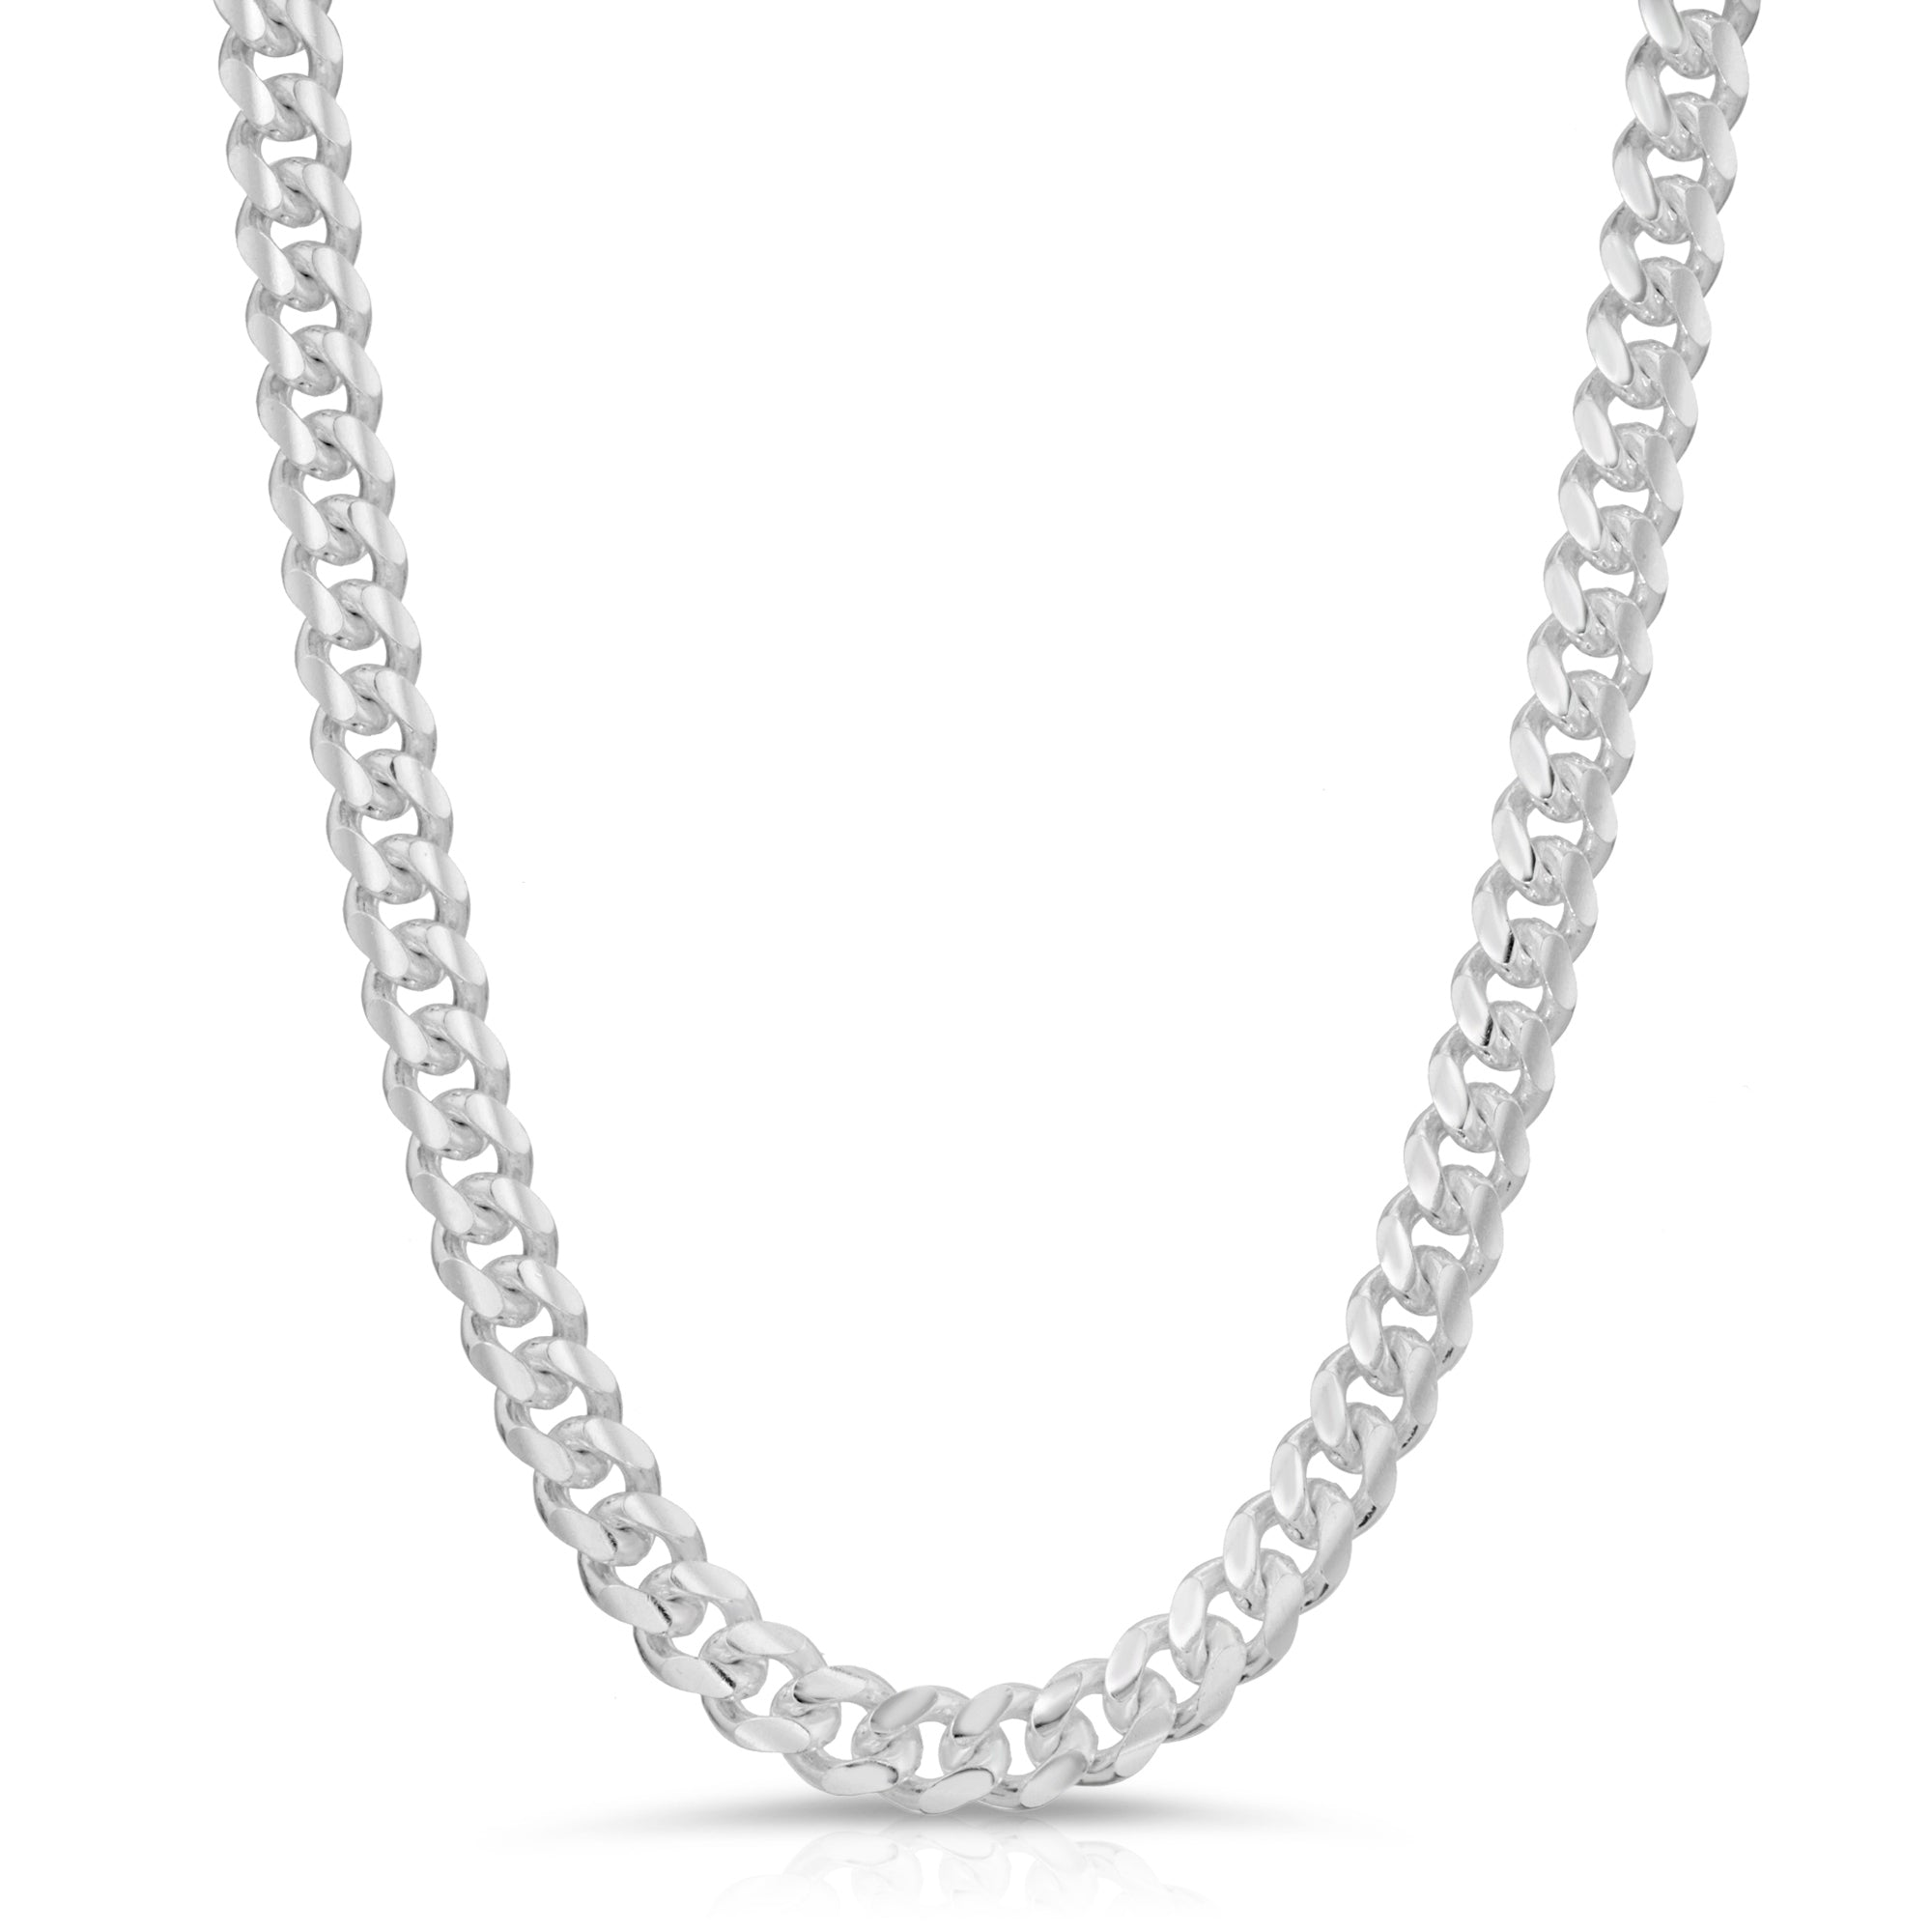 7mm Sterling Silver Miami Cuban Link Chain